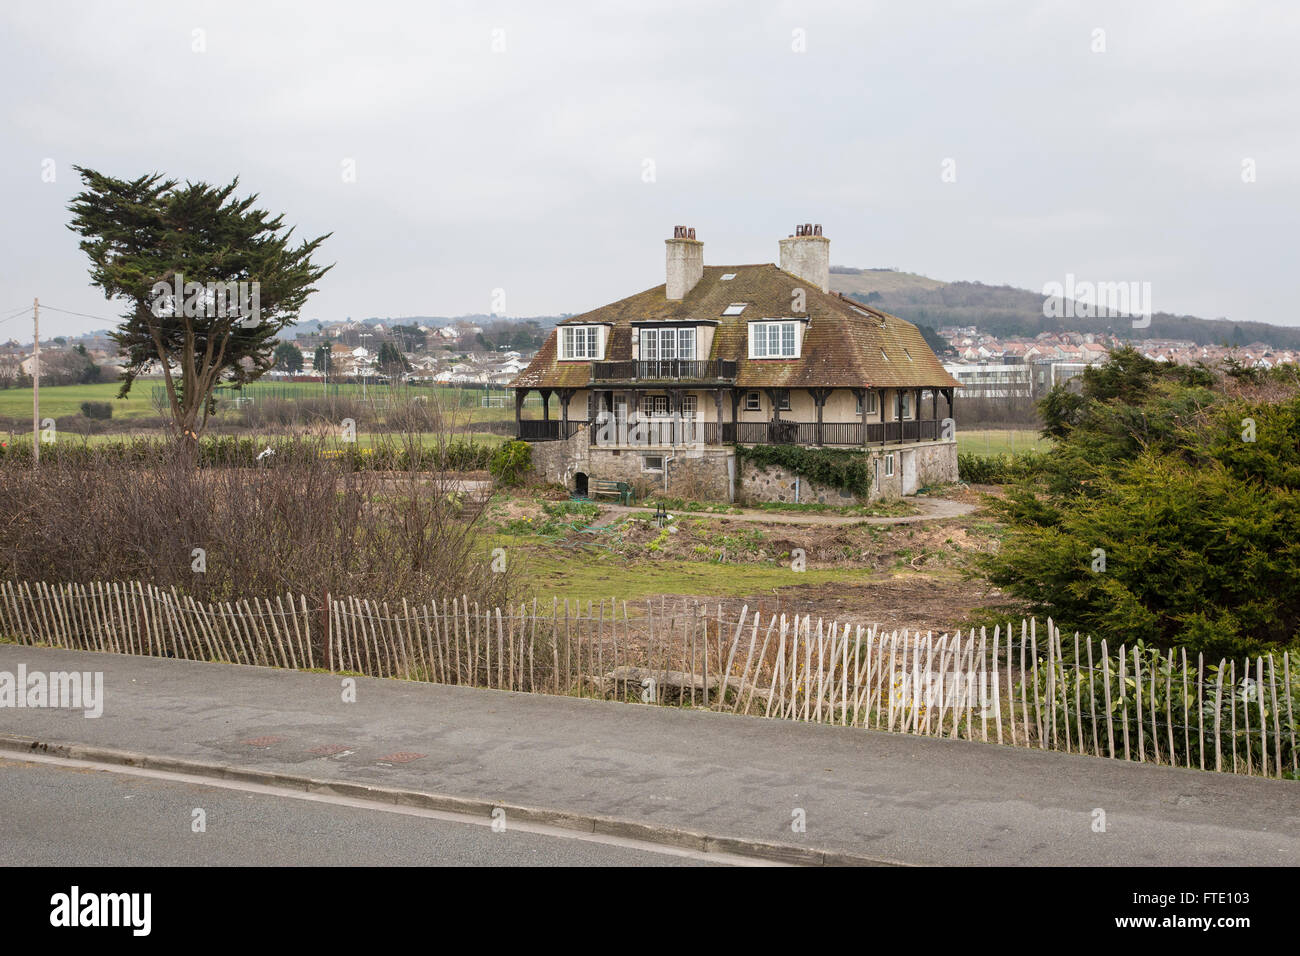 Odstone is a property in Rhos on Sea with legendary links to Prince Madoc who reputedly set sail from here in 1170 - Stock Image